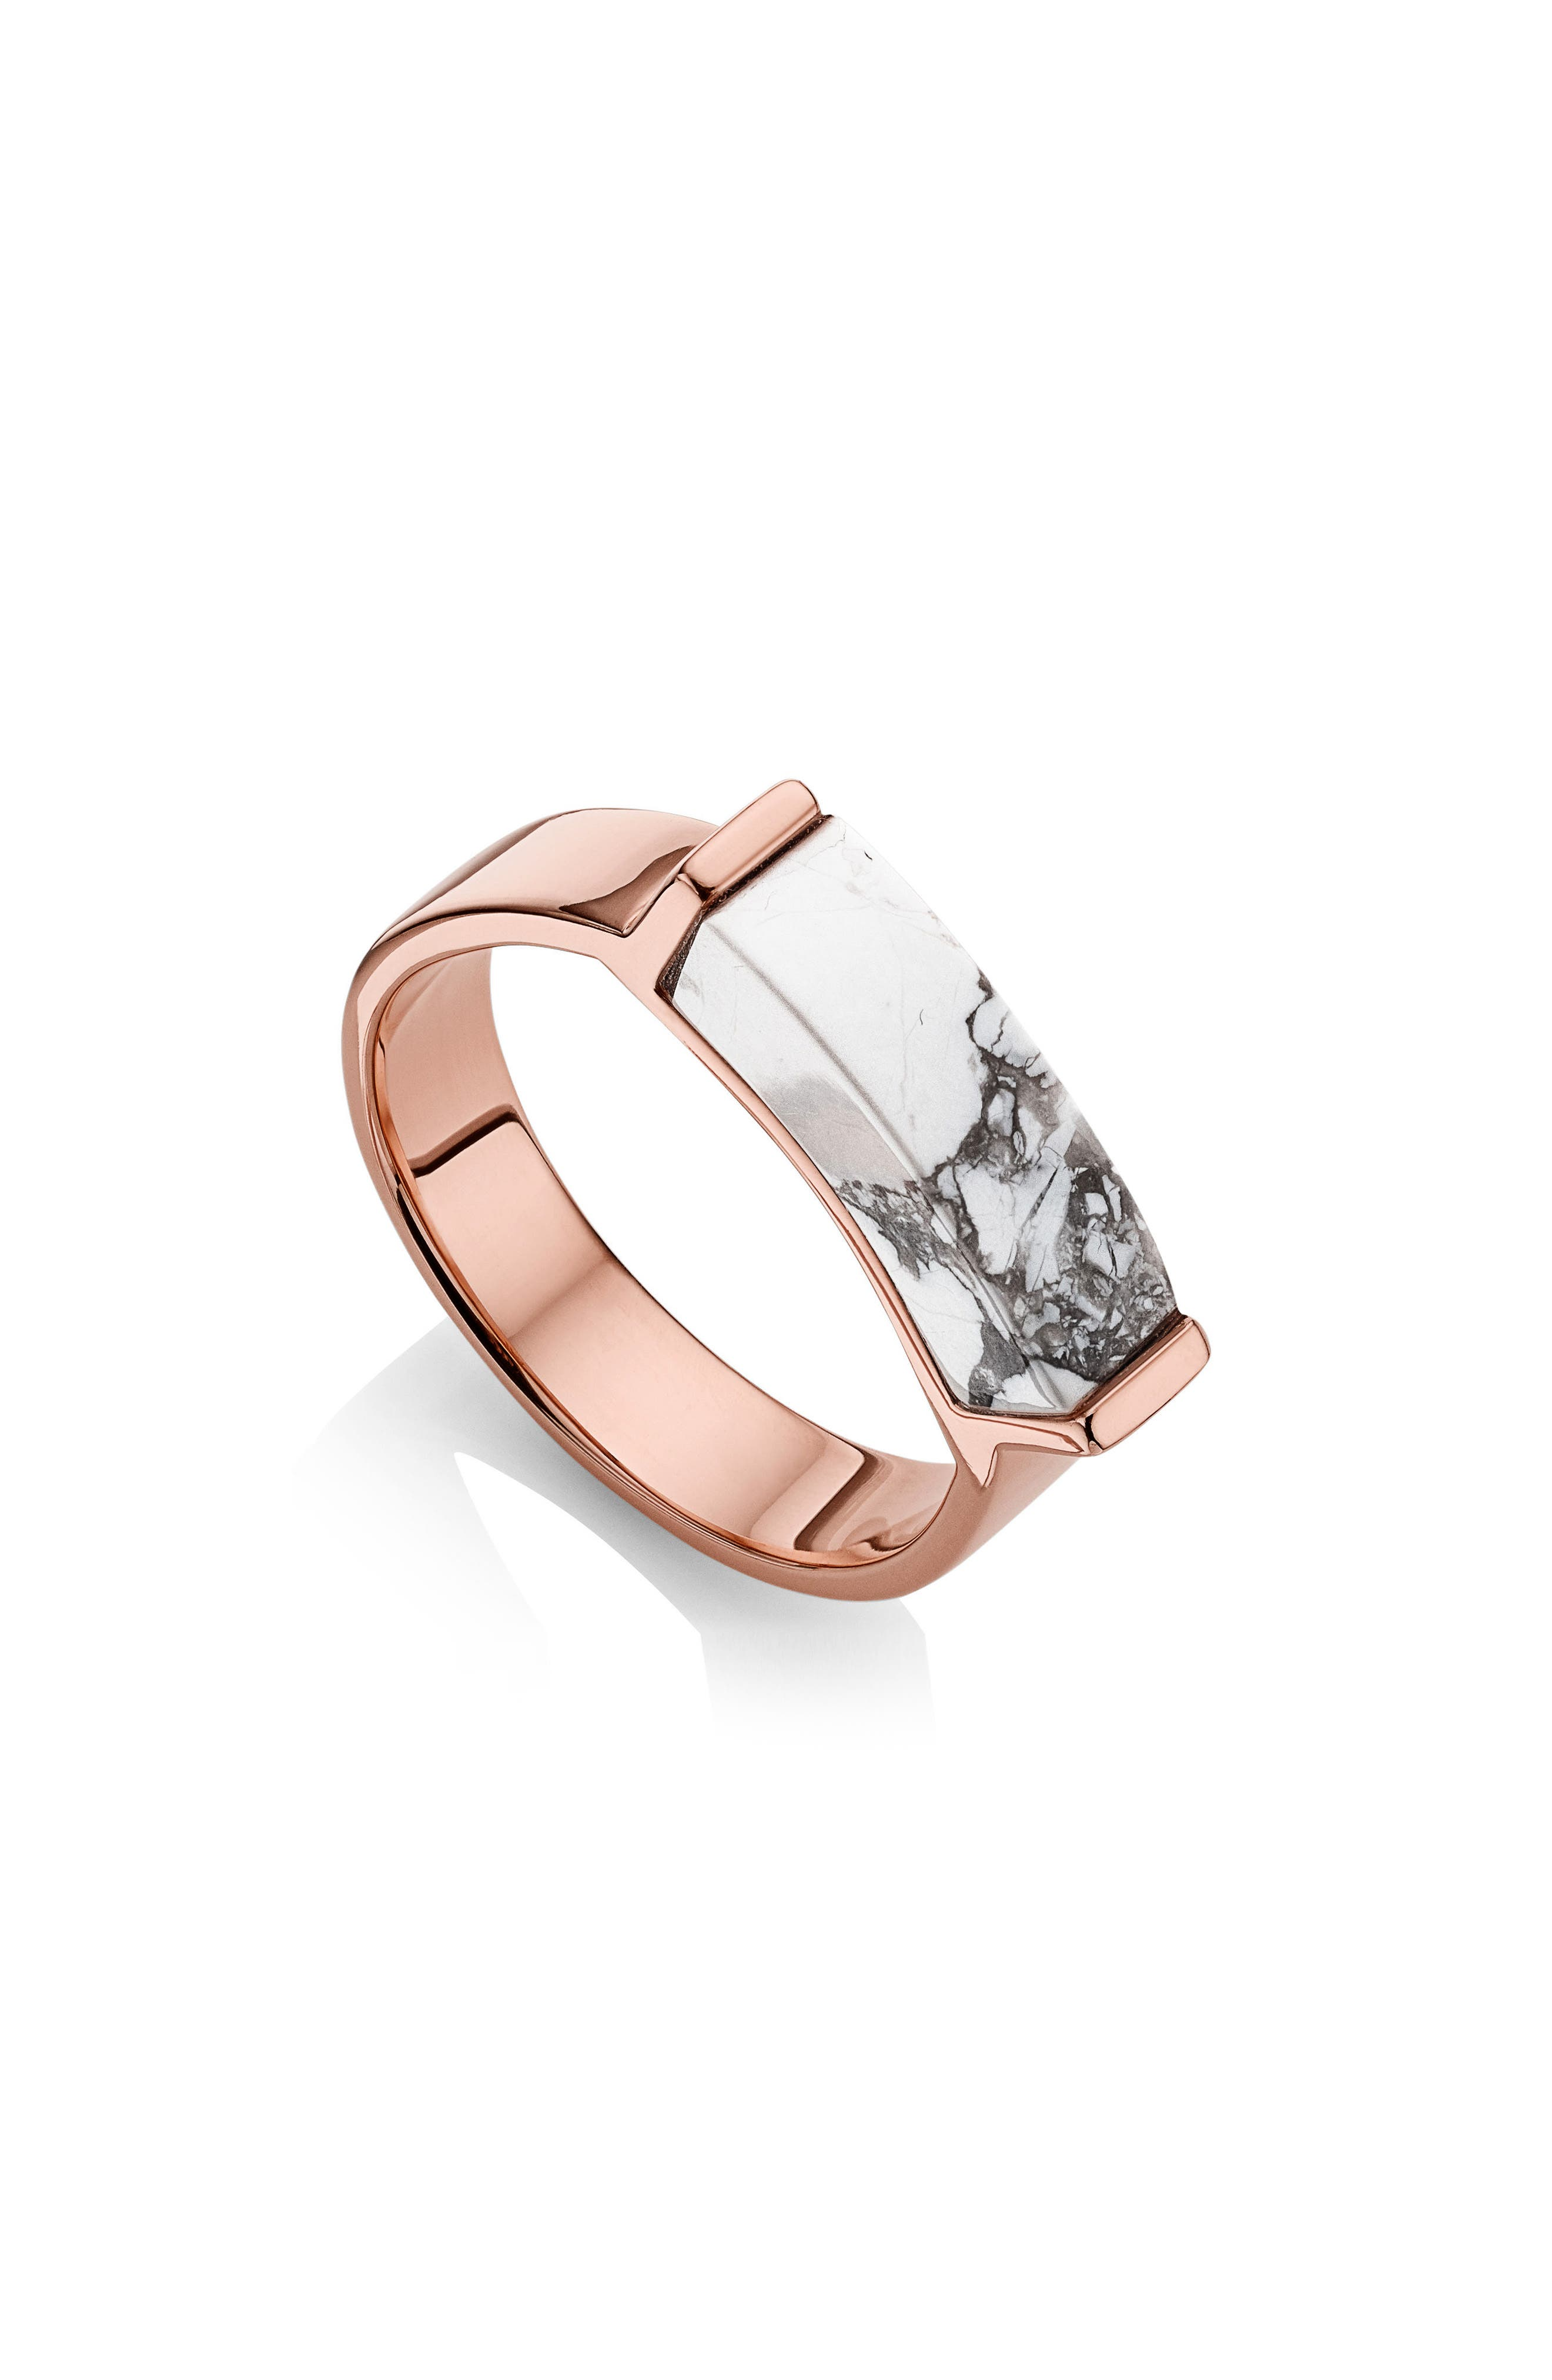 Engravable Linear Stone Ring,                             Main thumbnail 1, color,                             ROSE GOLD/ HOWLITE